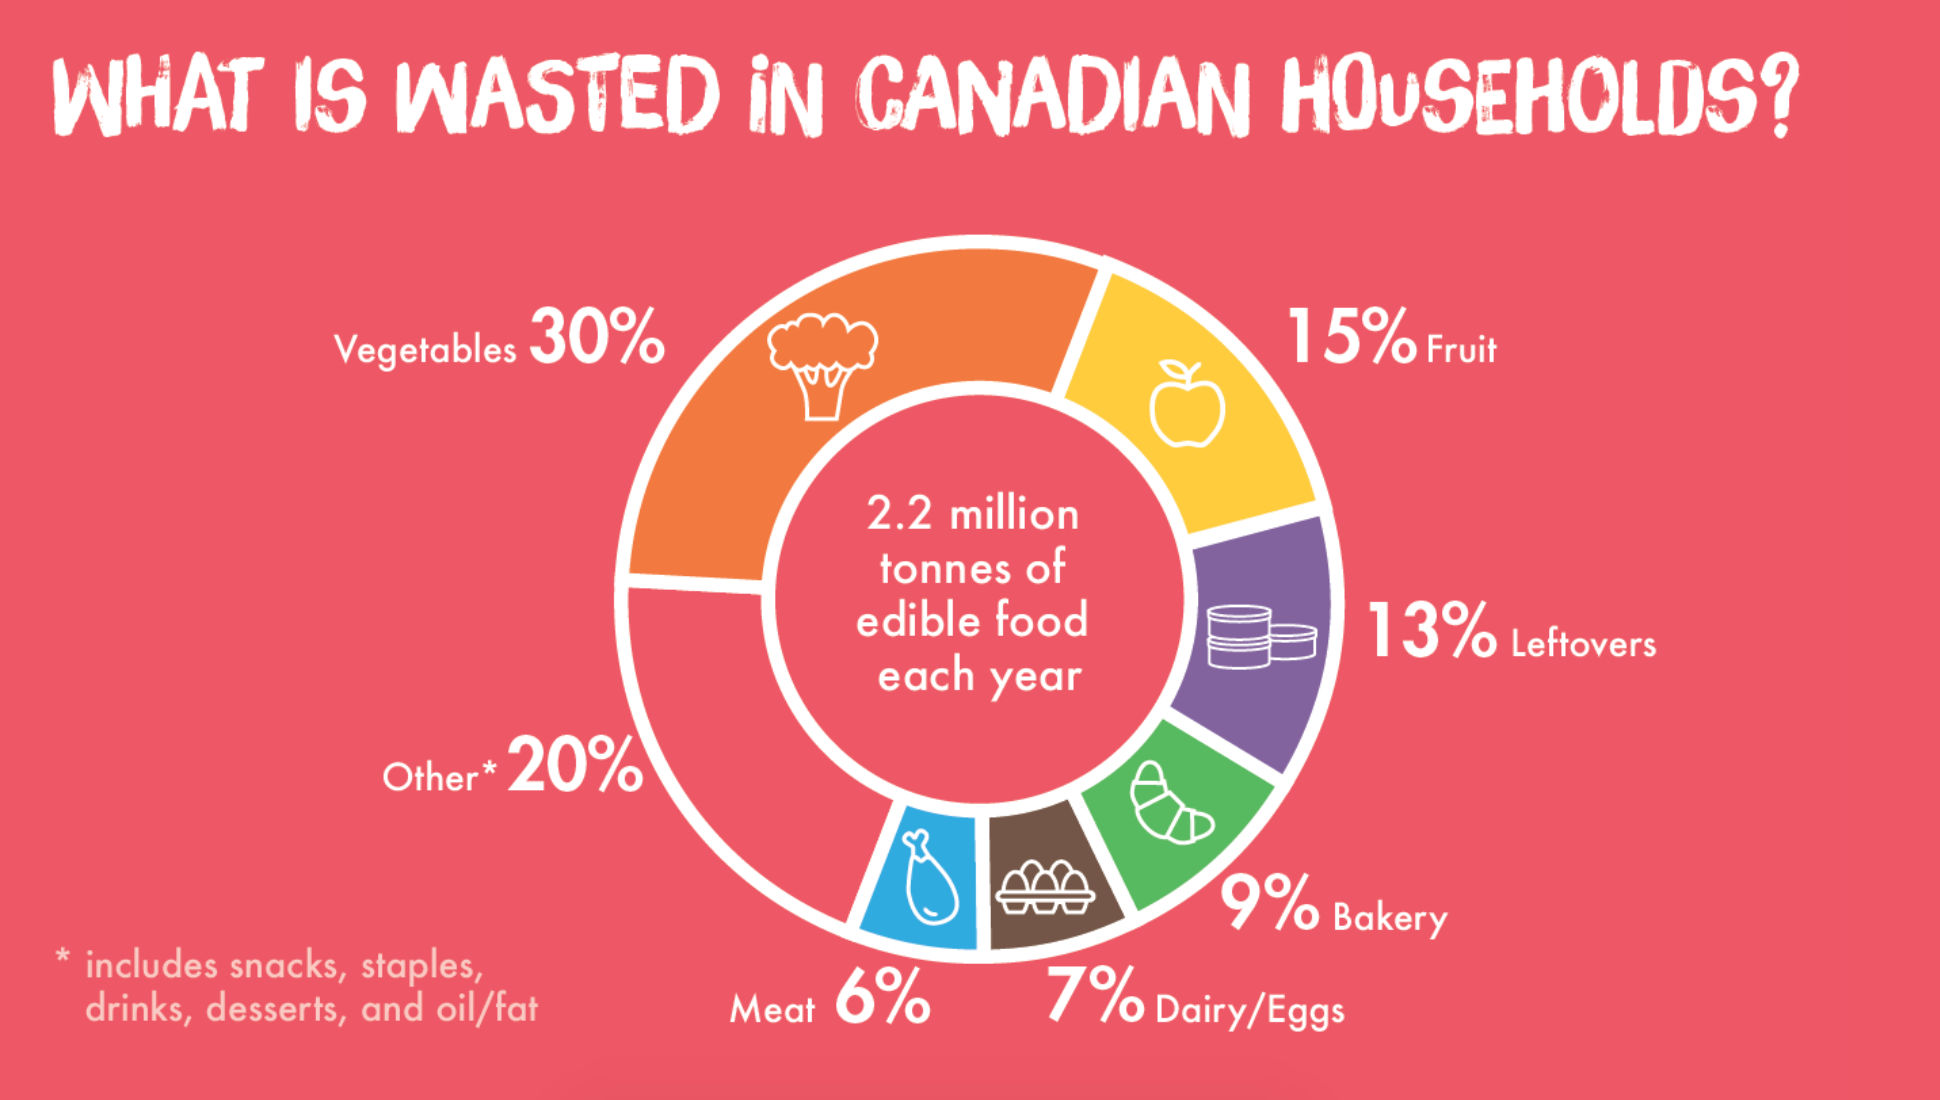 Love Food Hate Waste image for what is wasted in Canadian households with 2.2 million tonnes of edible food wasted every year—30% of which are vegetables.